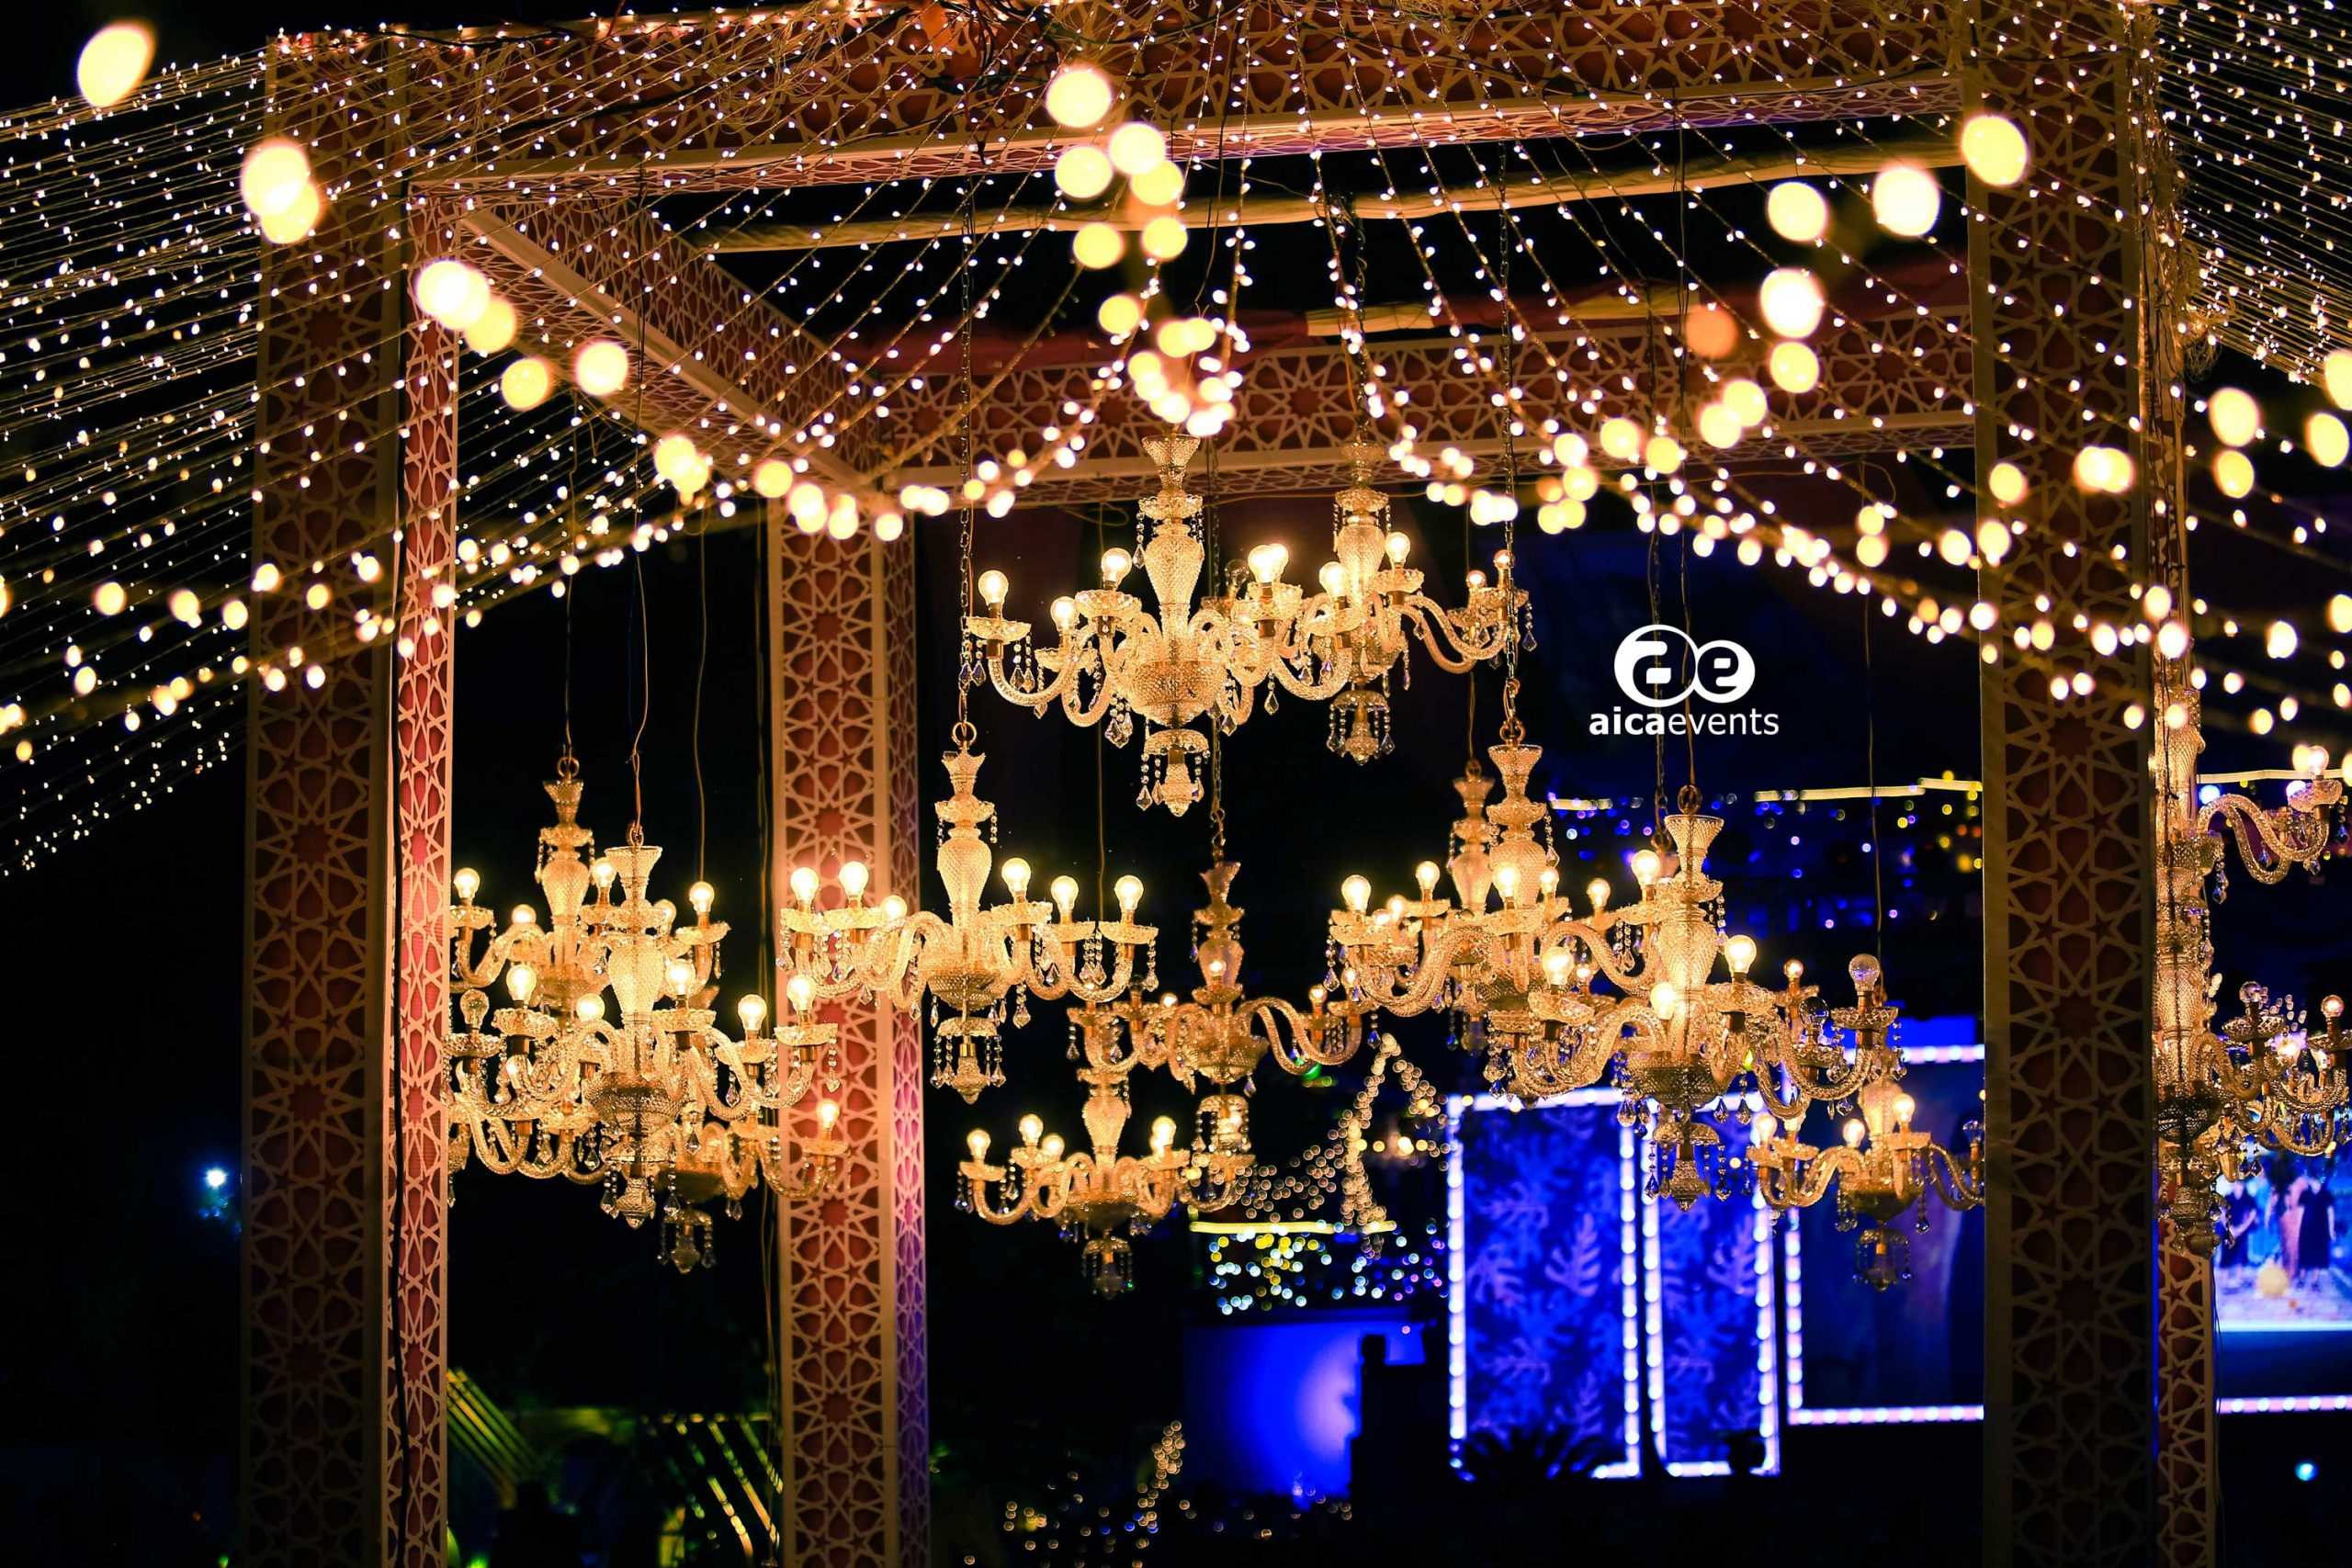 aicaevents_decor_sangeet6